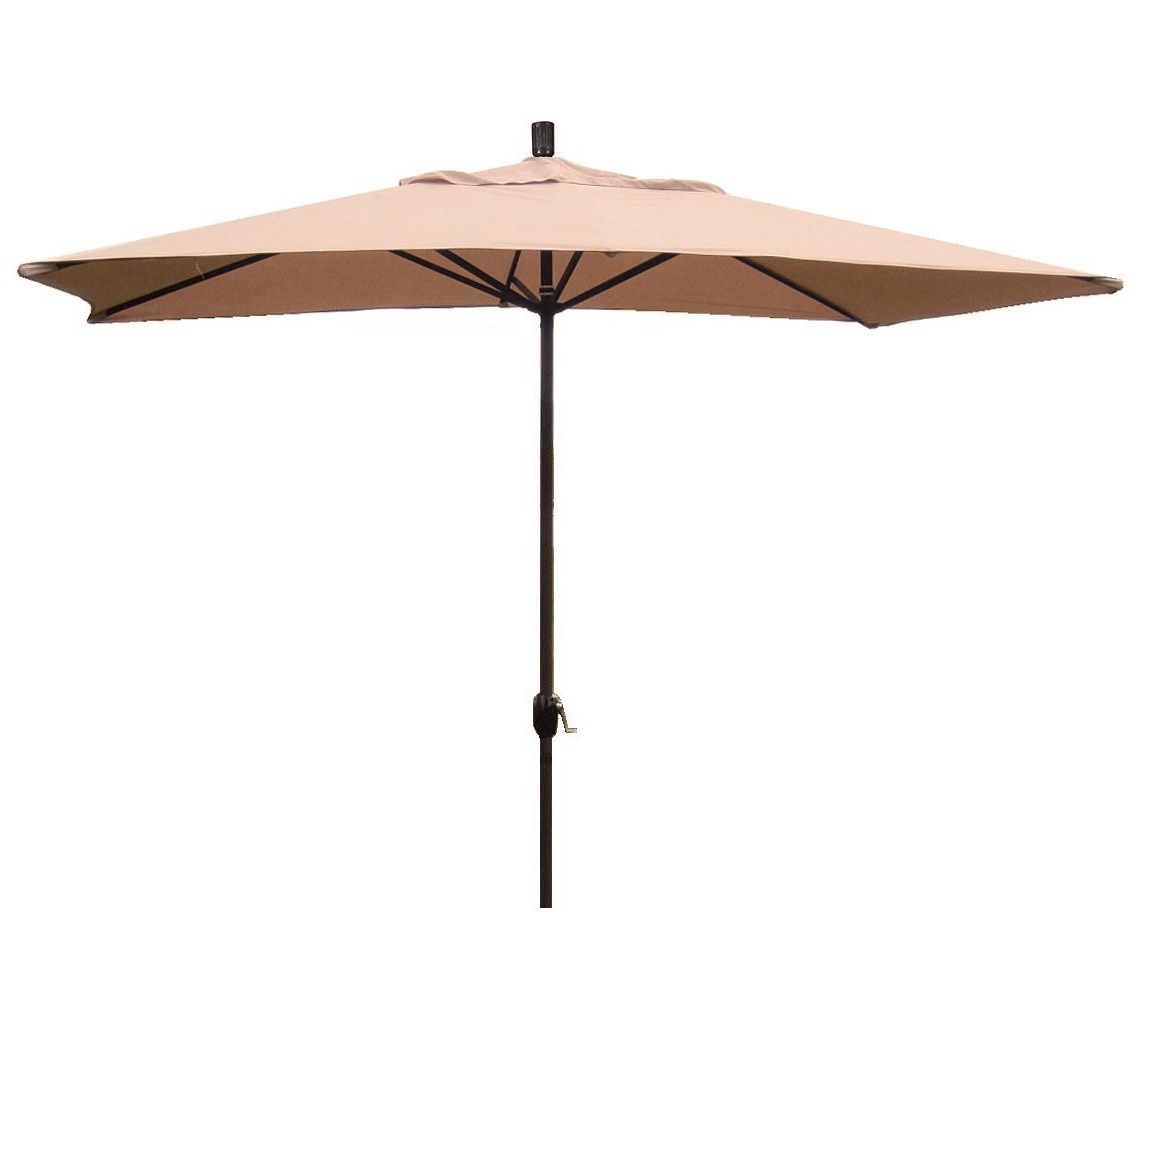 Dena Rectangular Market Umbrellas Intended For 2019 Grieve 10' X 6' Rectangular Market Umbrella (View 8 of 20)